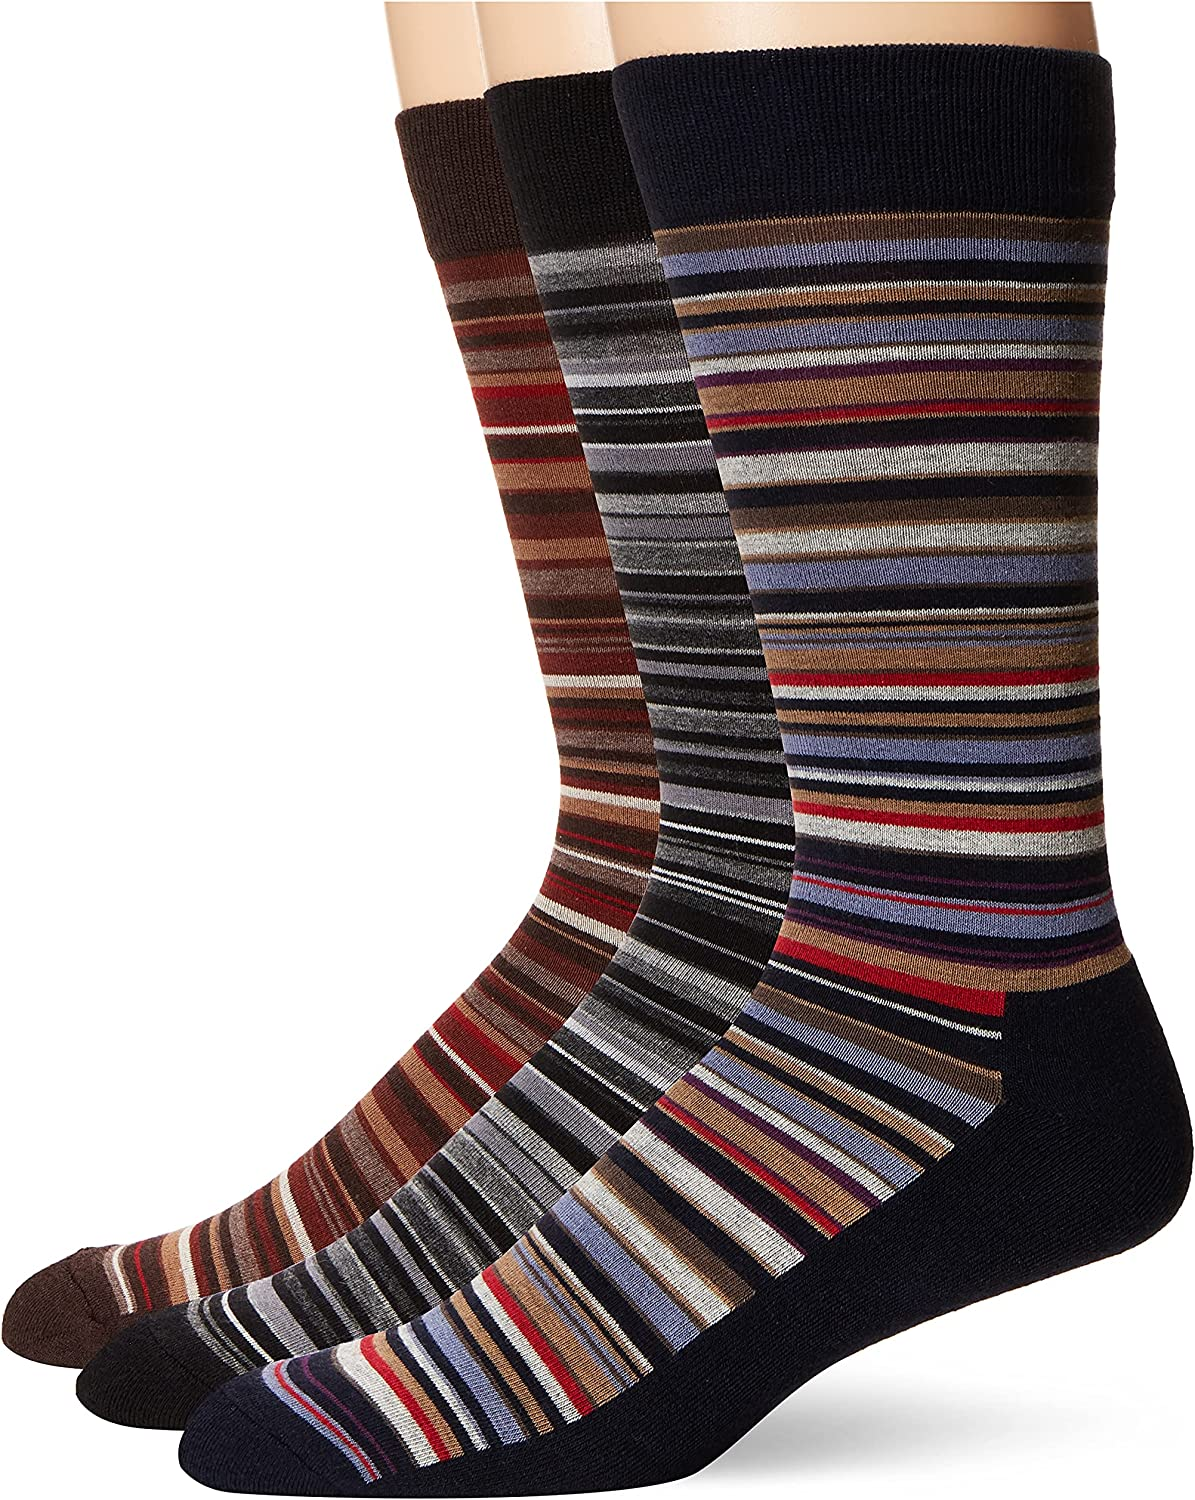 Hue Men's Assorted Crew Socks with Cushion, 3 Pair Pack